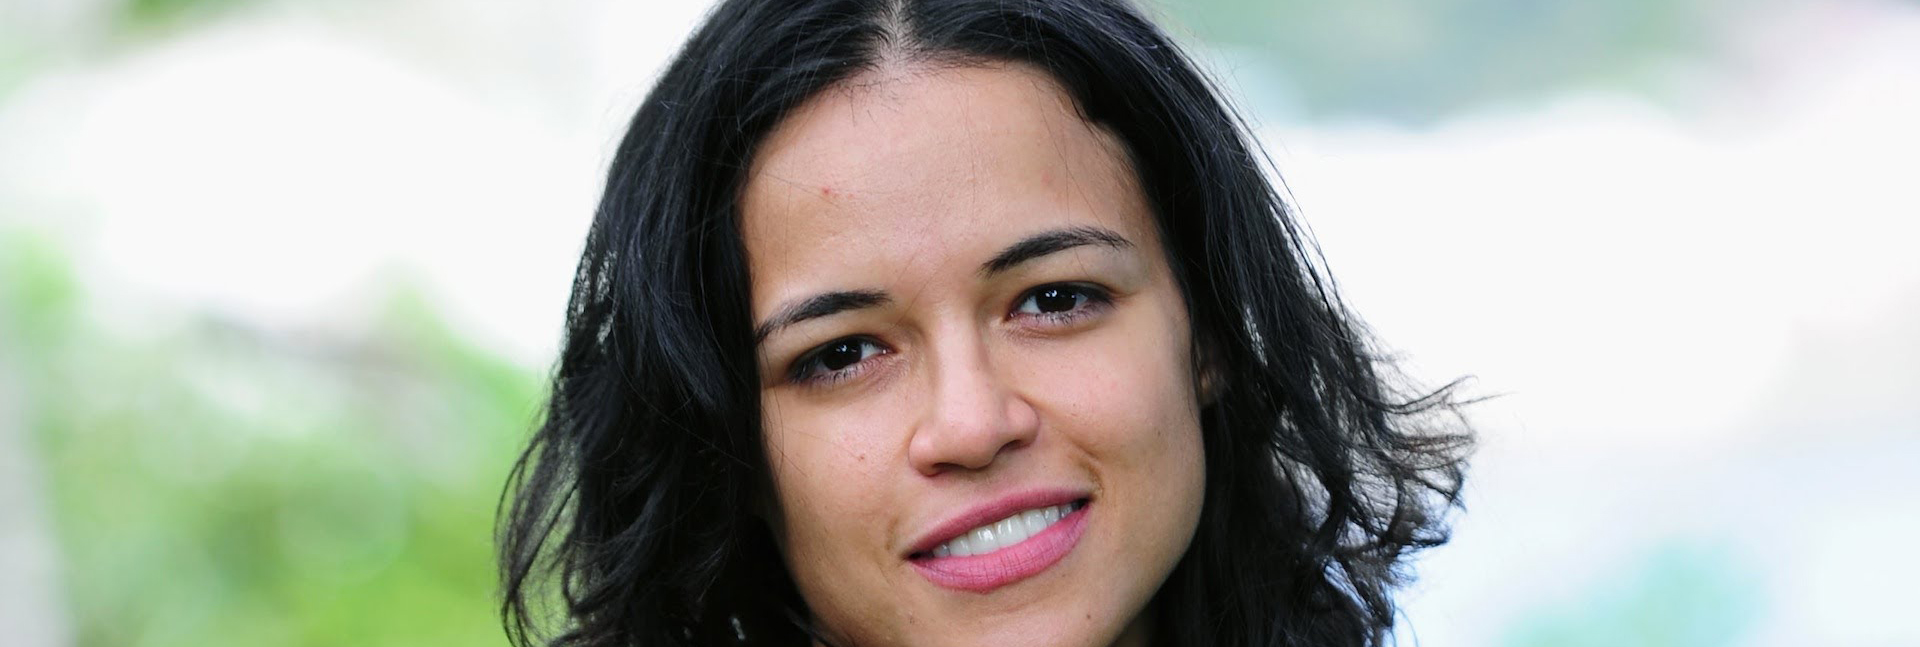 Young Michelle Rodriguez nudes (51 photos), Topless, Bikini, Boobs, cleavage 2006